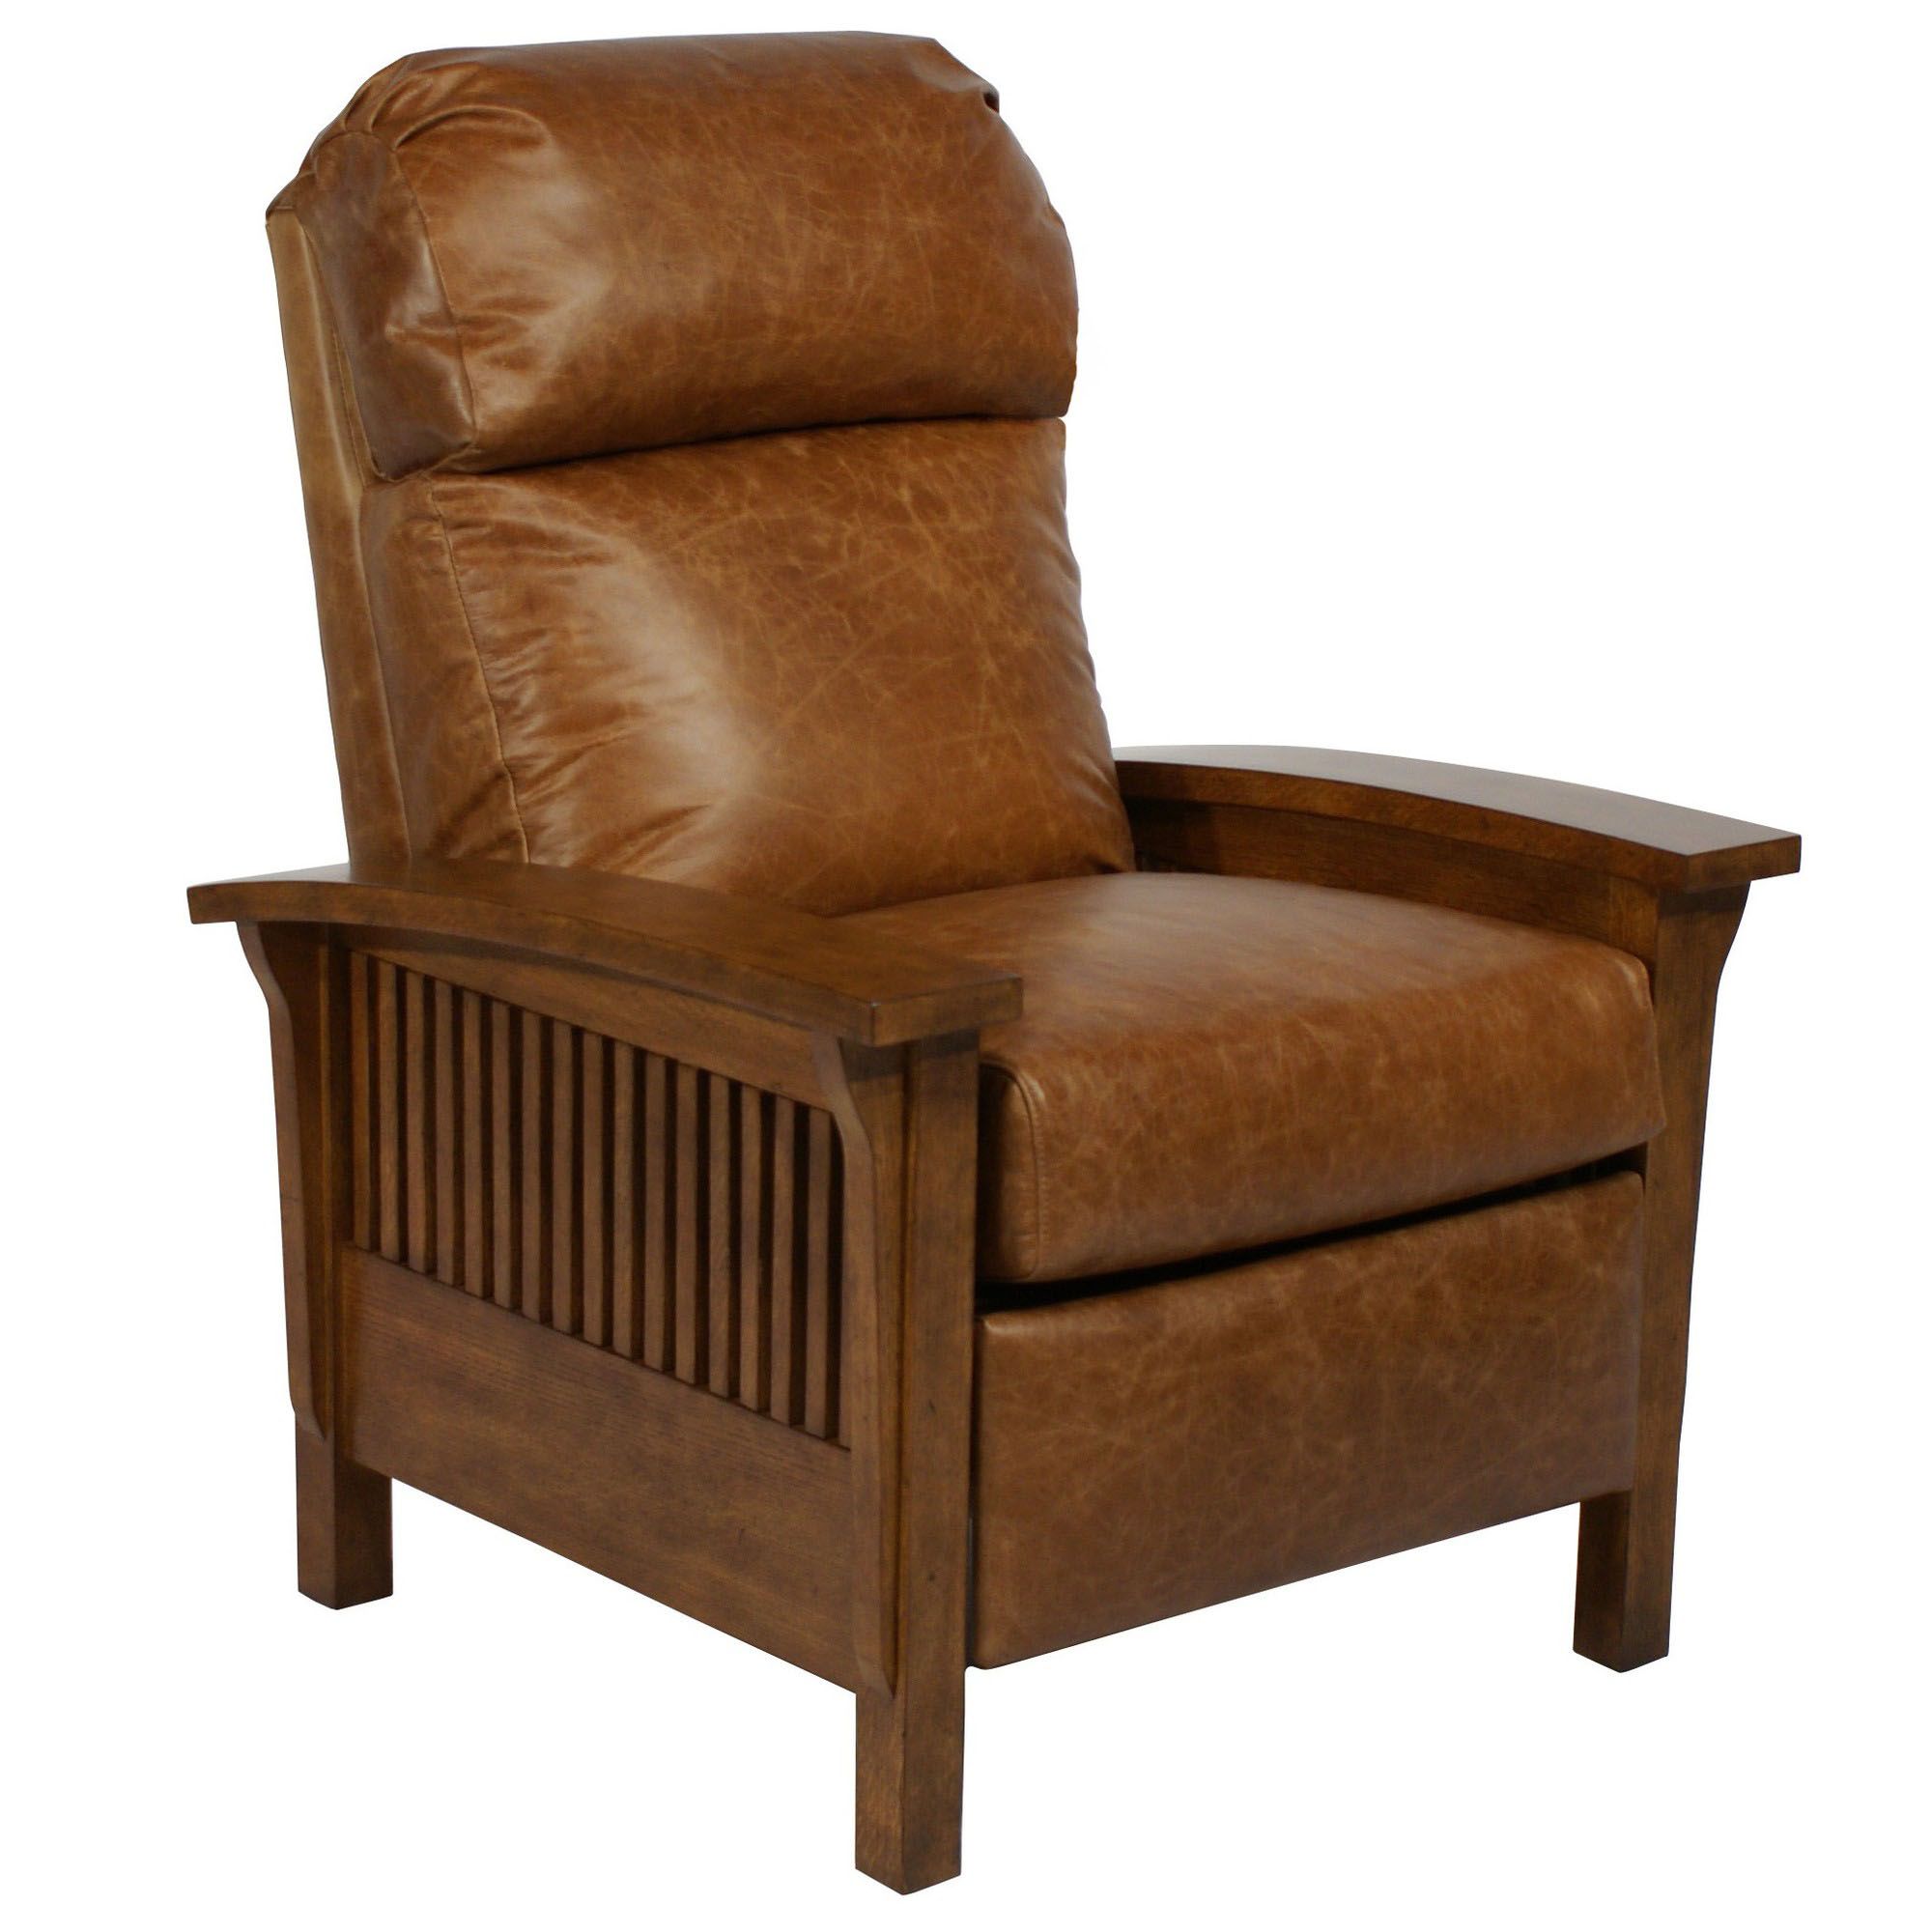 Barcalounger craftsman ii recliner chair leather for Chair recliner